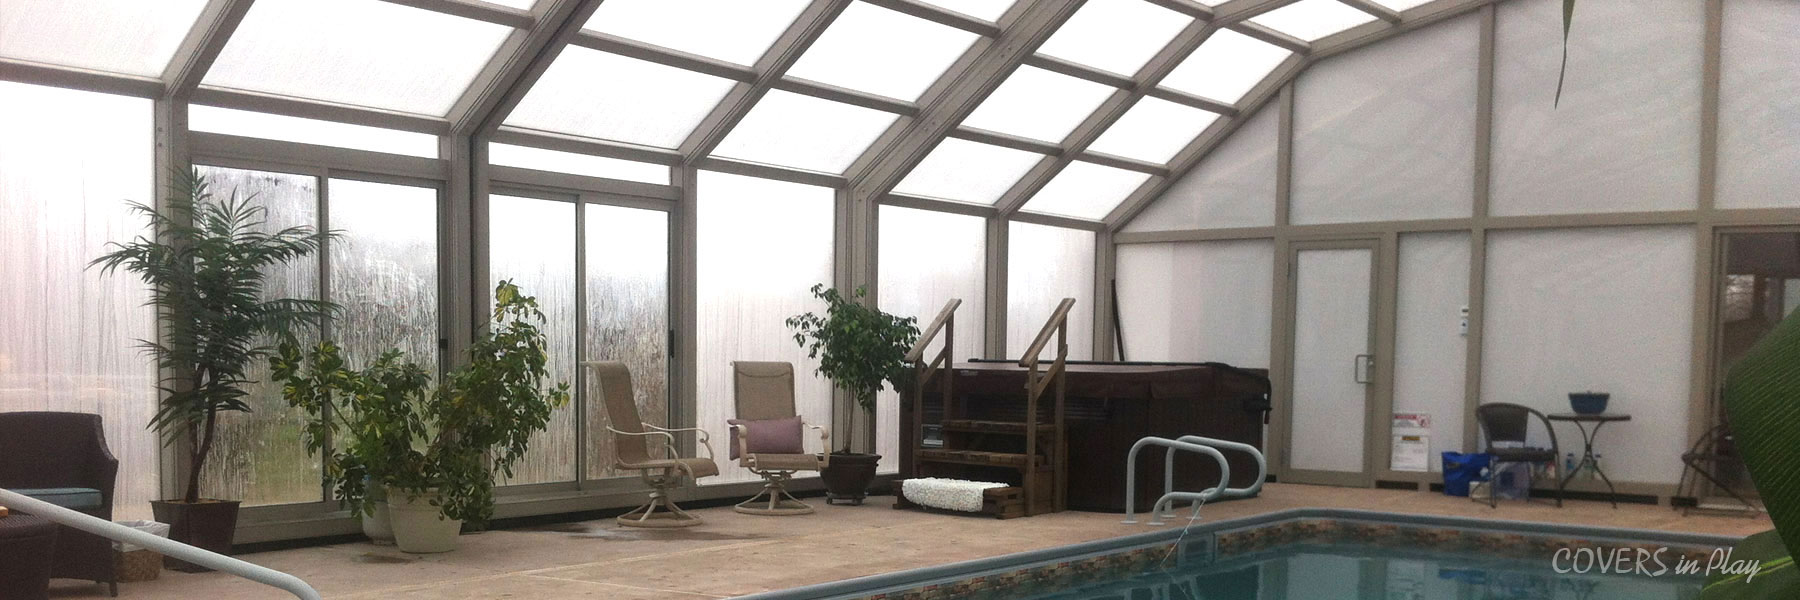 Hot Tub Enclosure